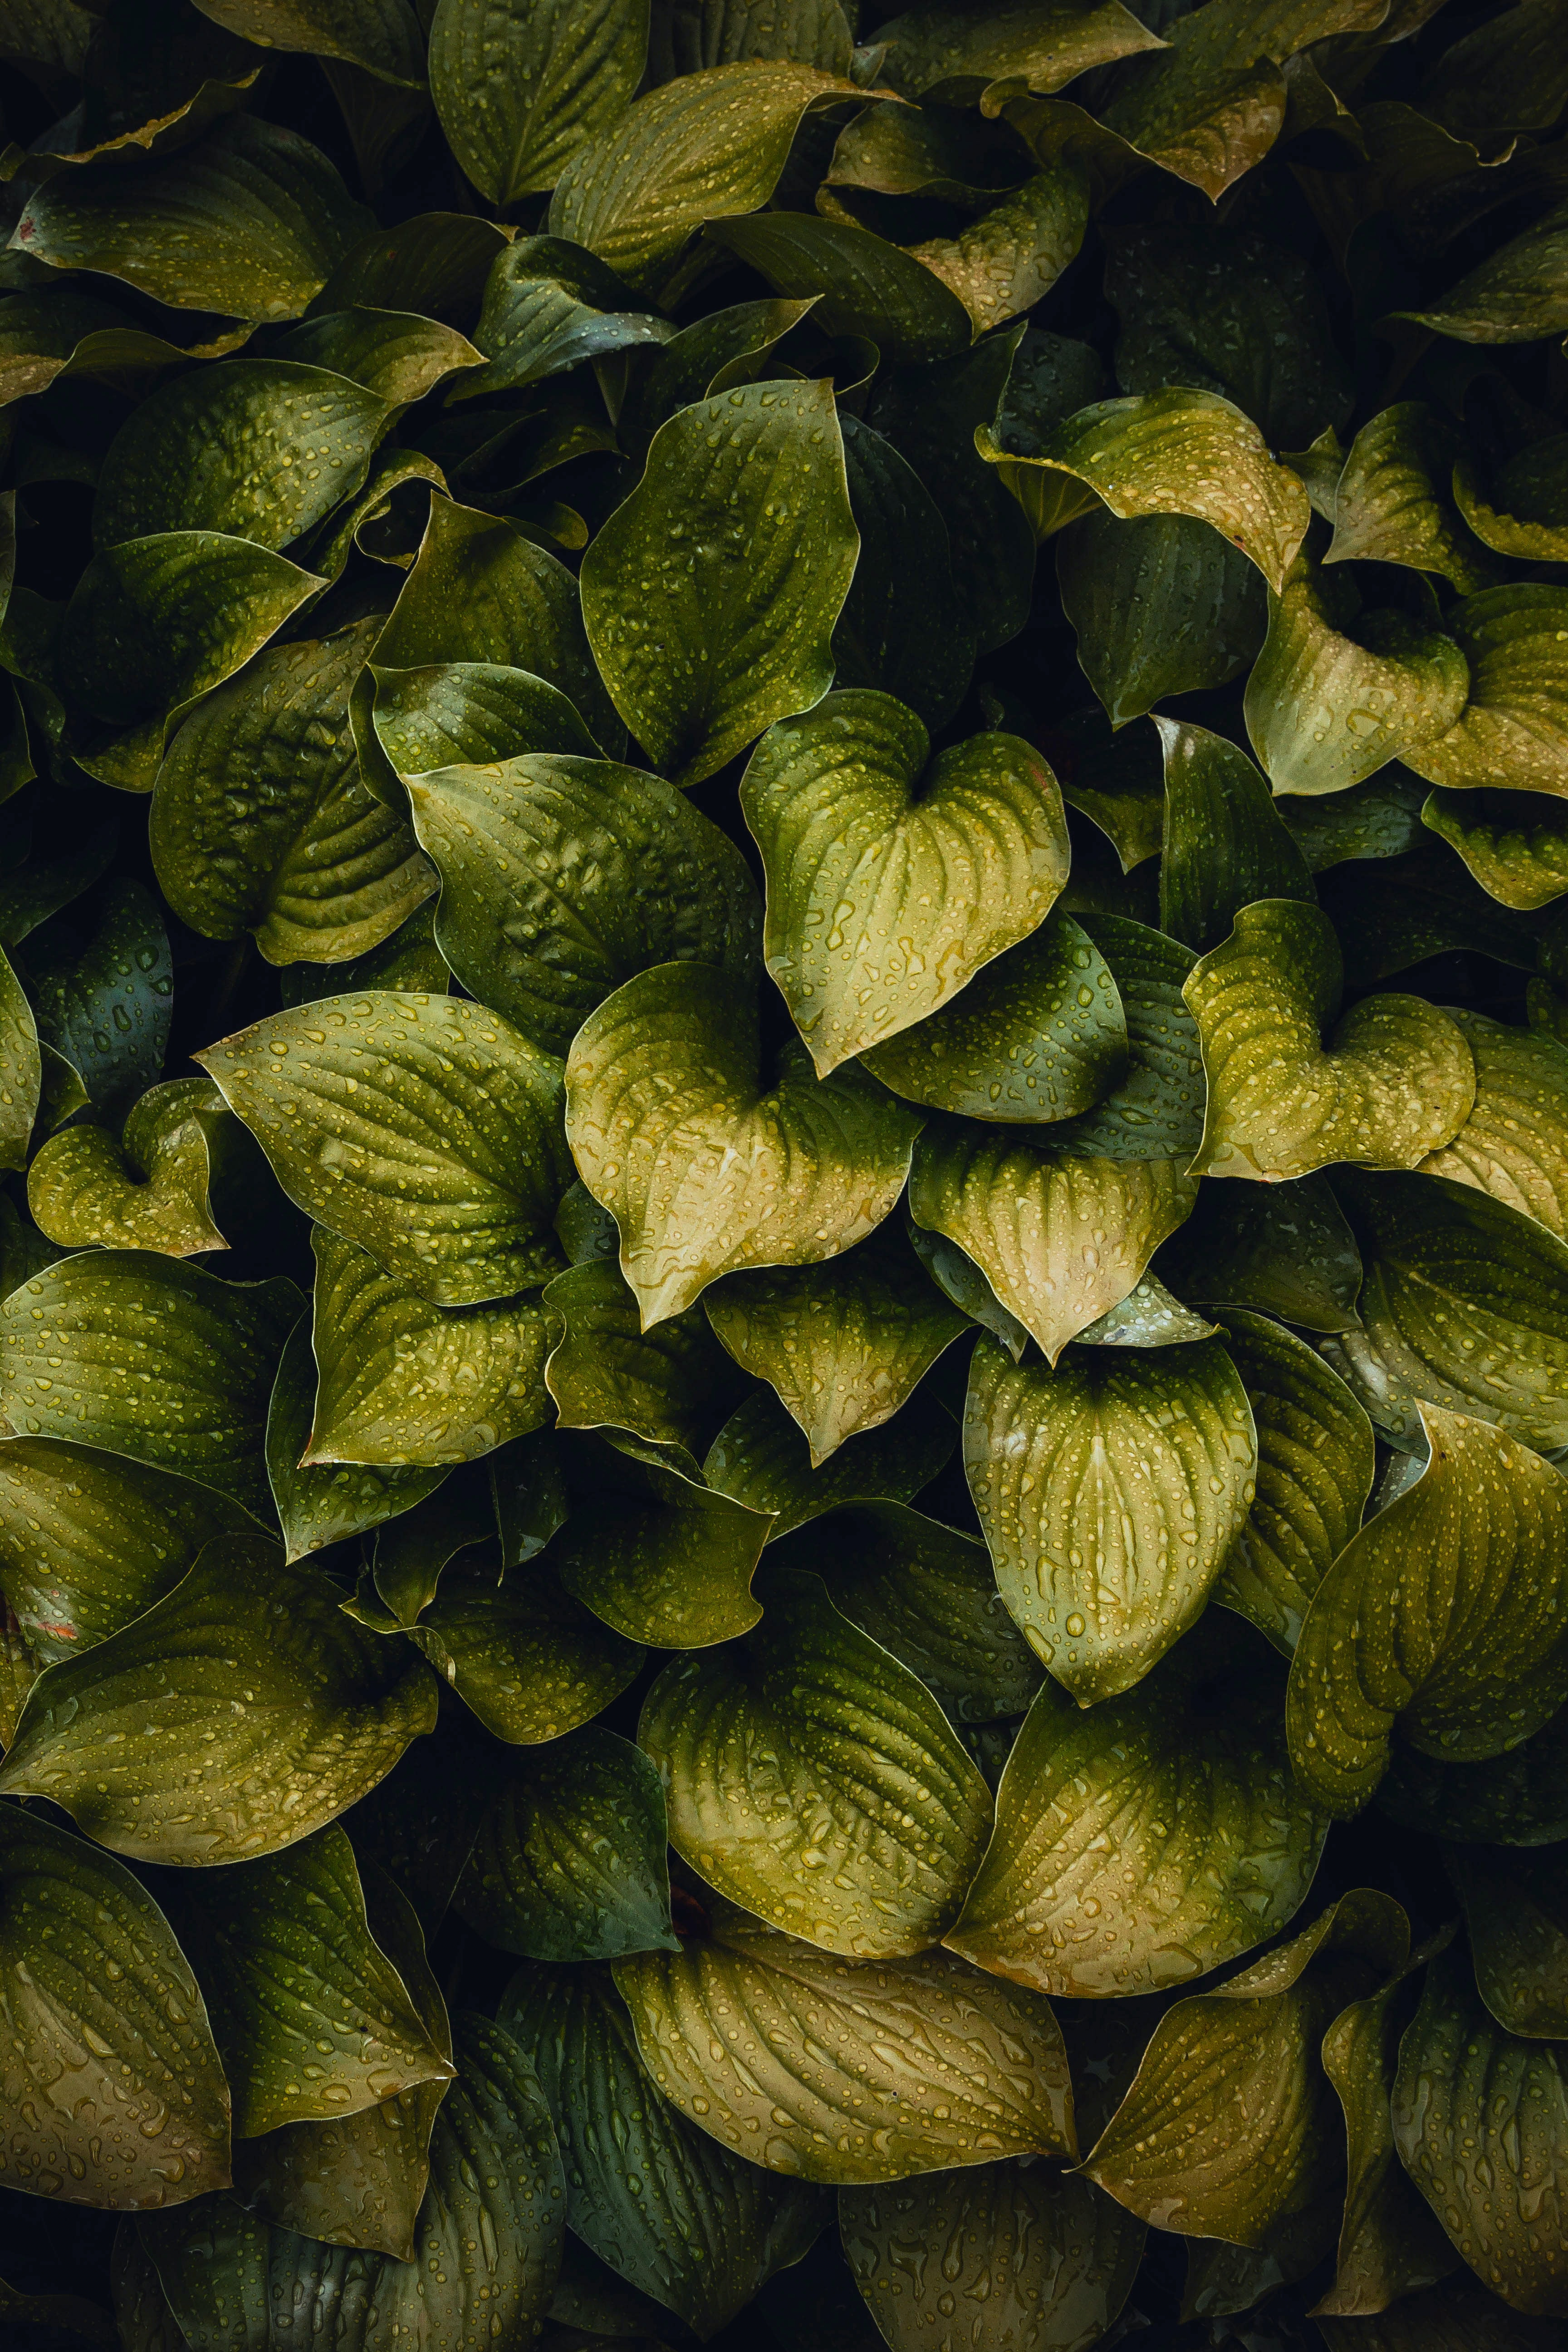 heart-shaped green leaf plants